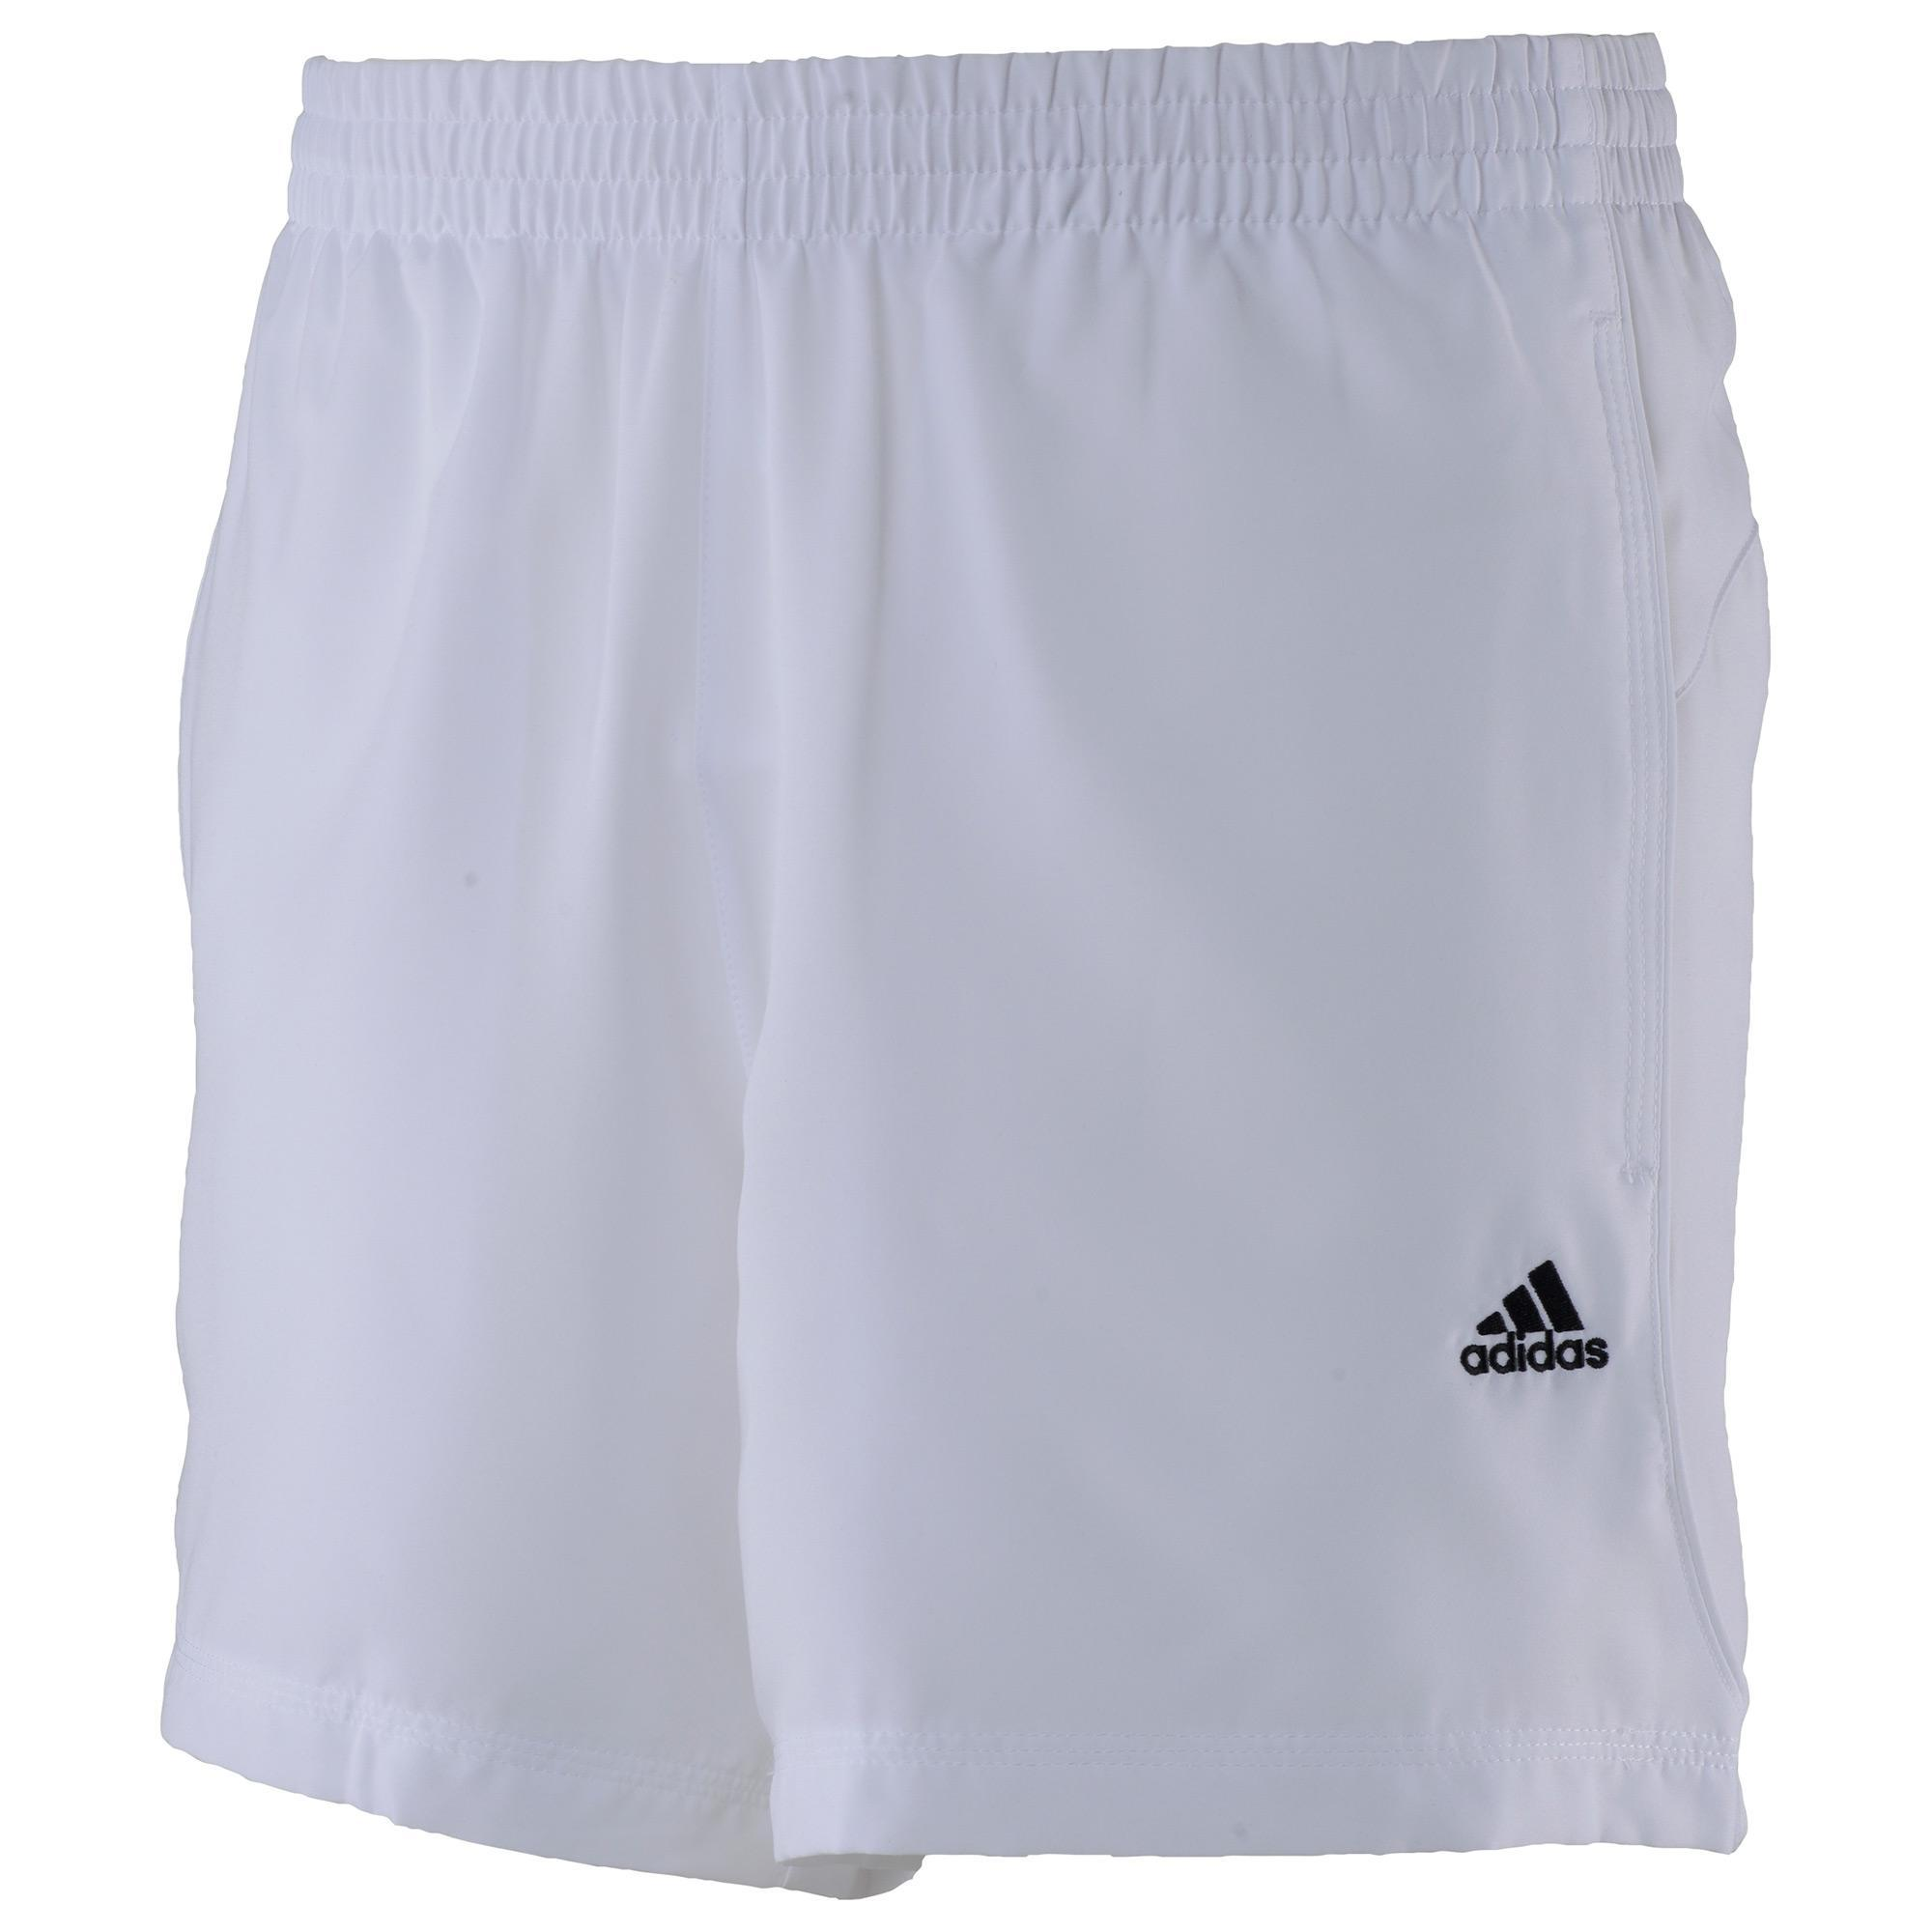 Adidas Mens Essentials Chelsea Shorts - White